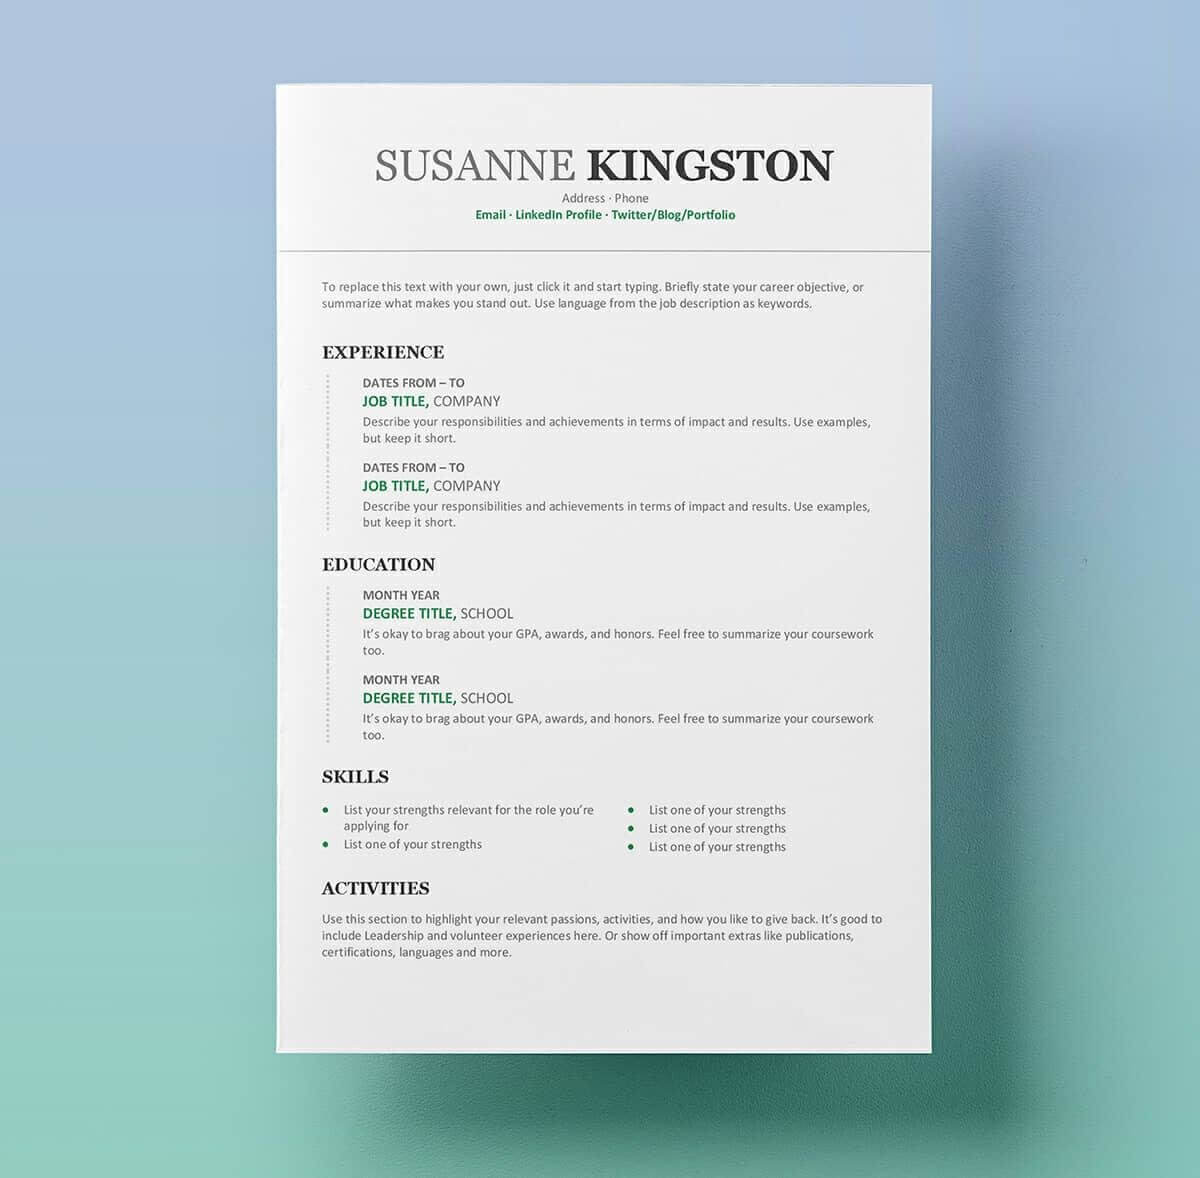 25 Resume Templates For Microsoft Word [Free Download] For Free Downloadable Resume Templates For Word